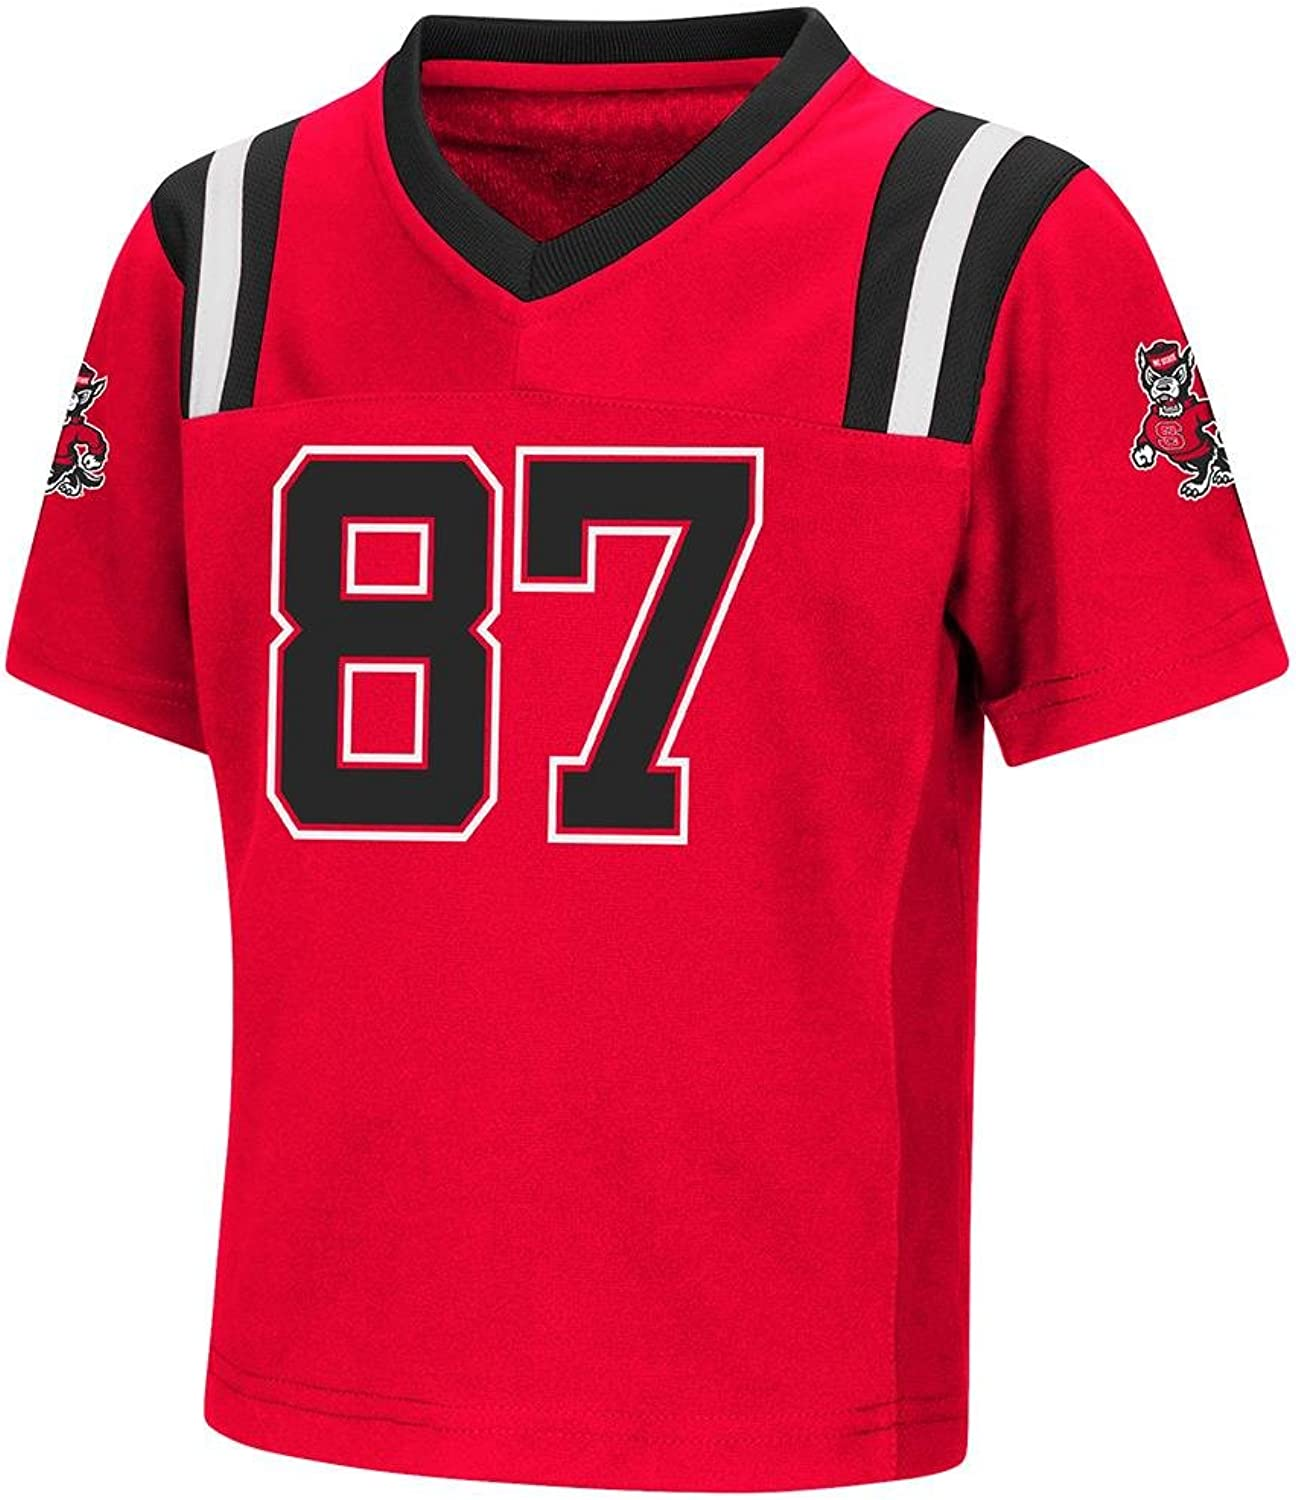 Colosseum Toddler NC State Wolfpack Football Jersey